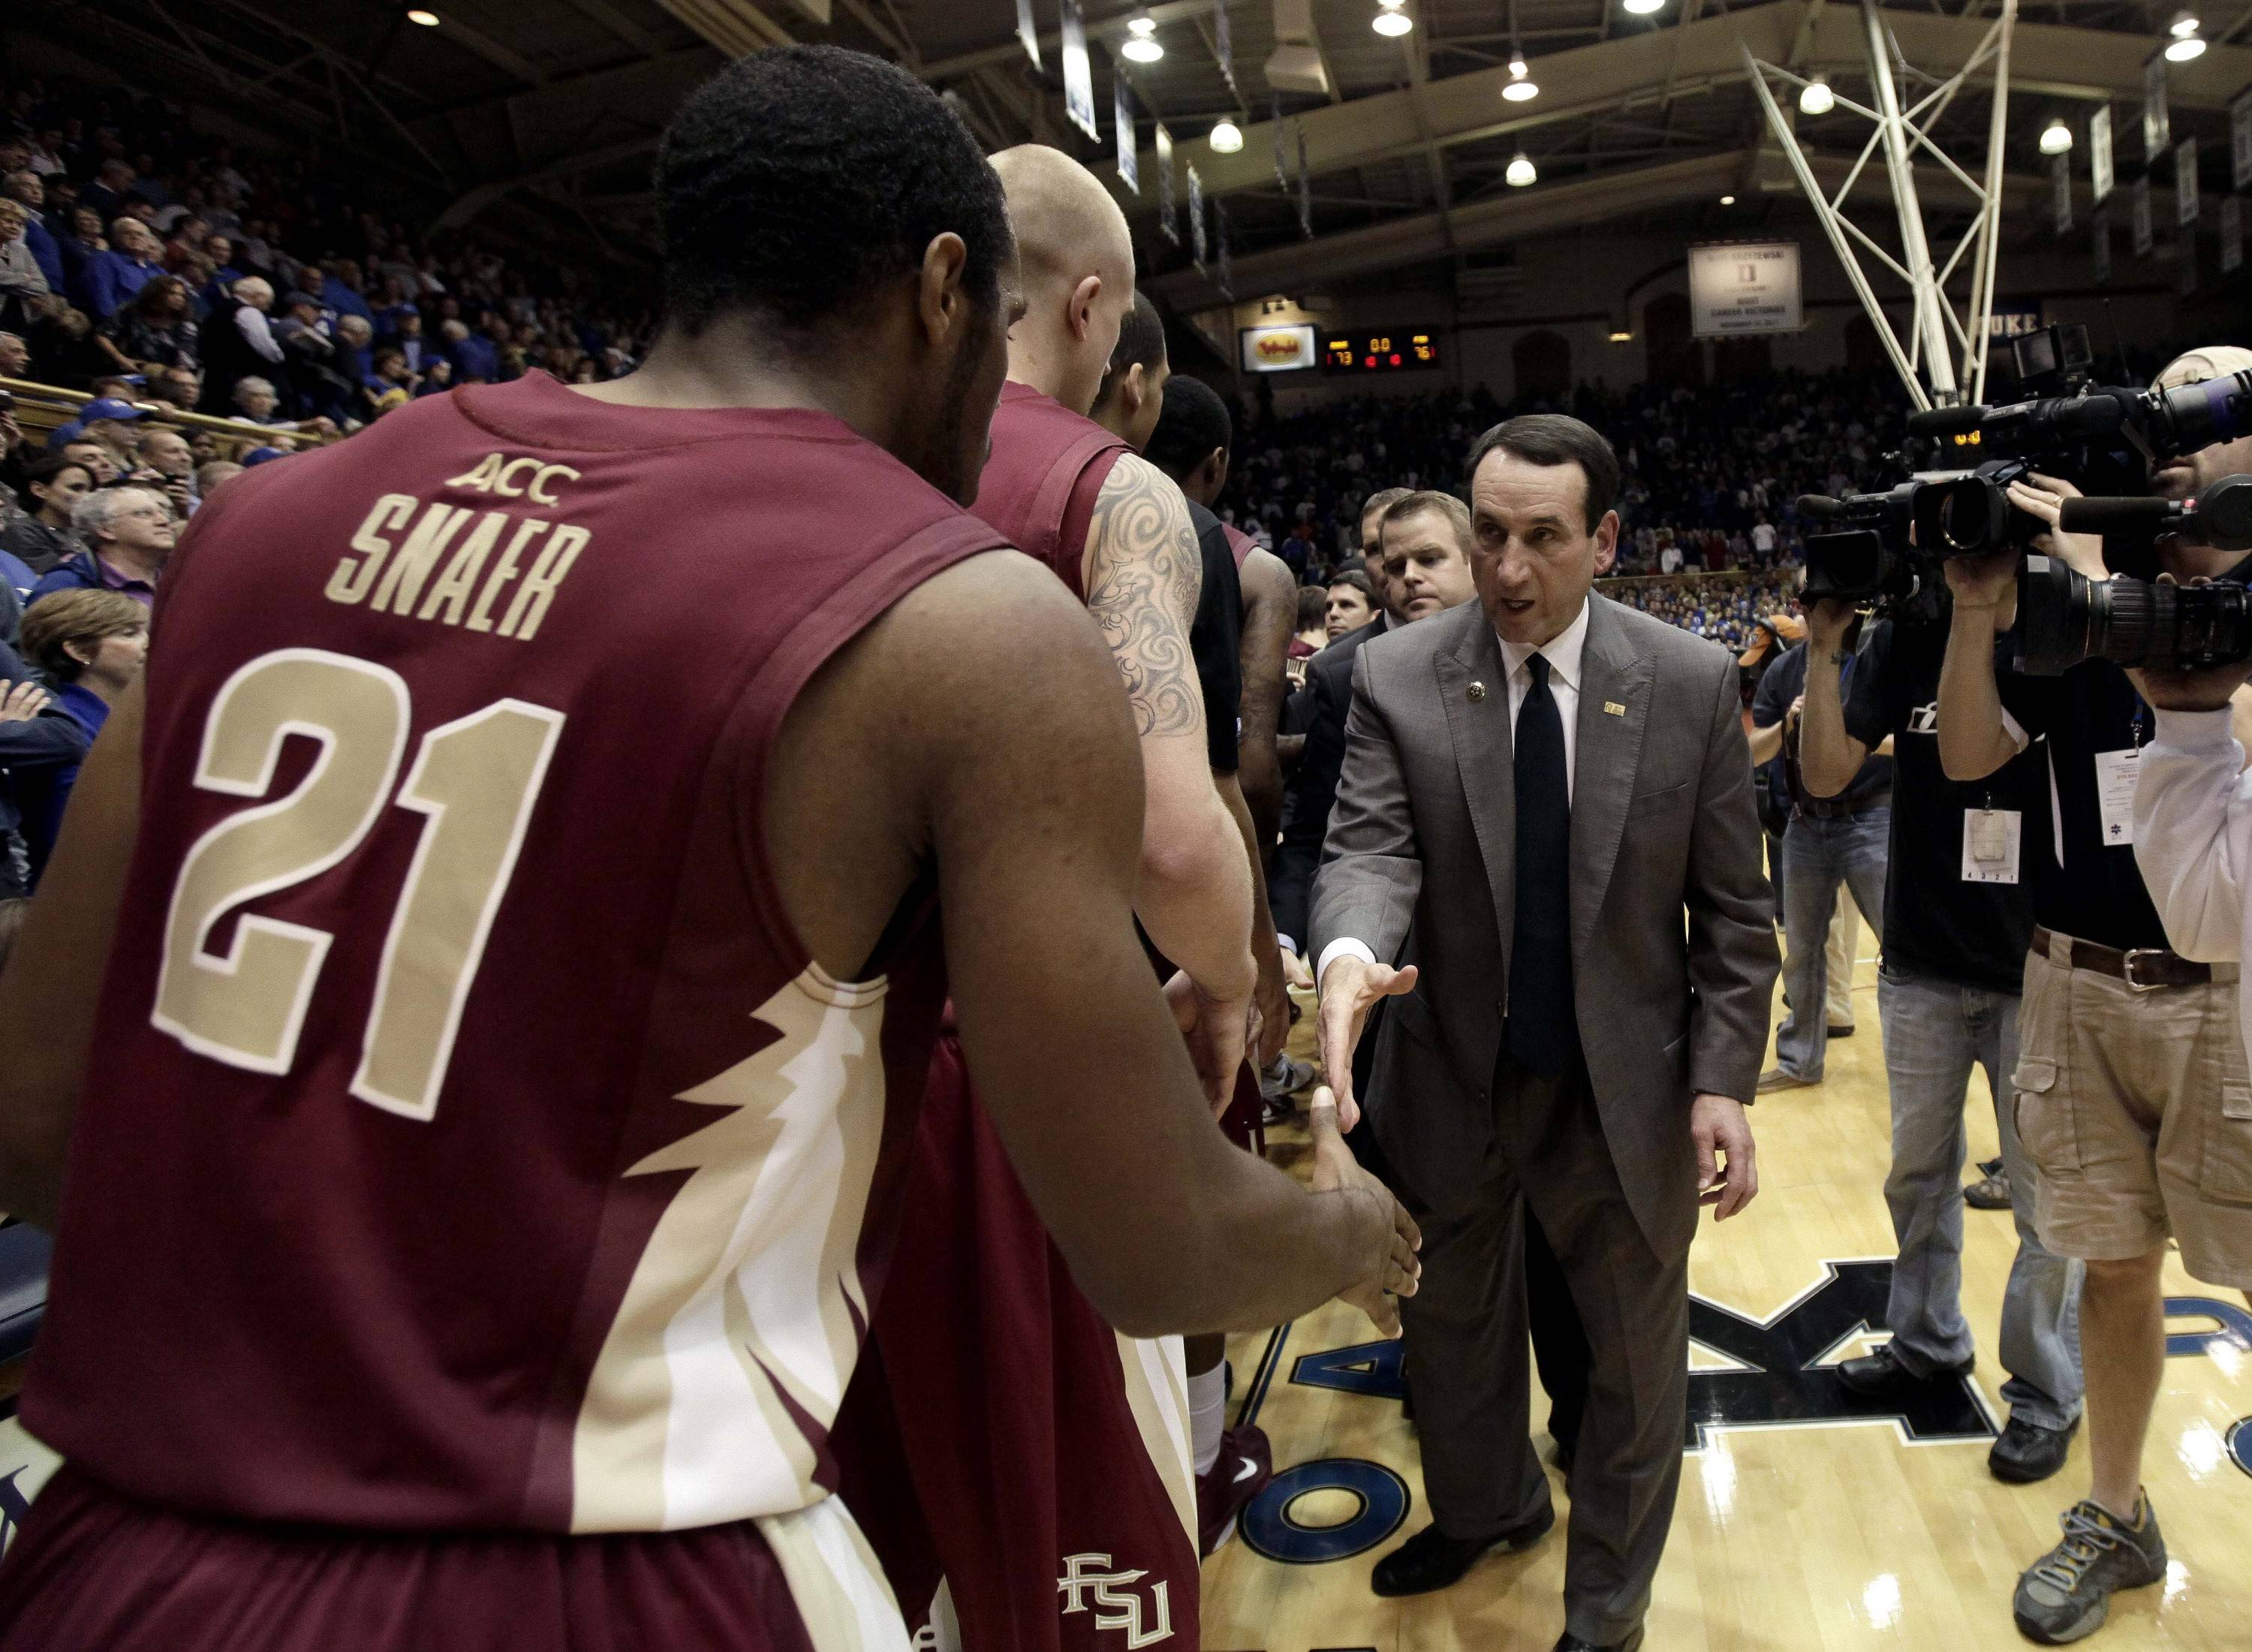 Duke coach Mike Krzyzewski, right, congratulates Florida State's Michael Snaer (21) following the game. (AP Photo/Gerry Broome)